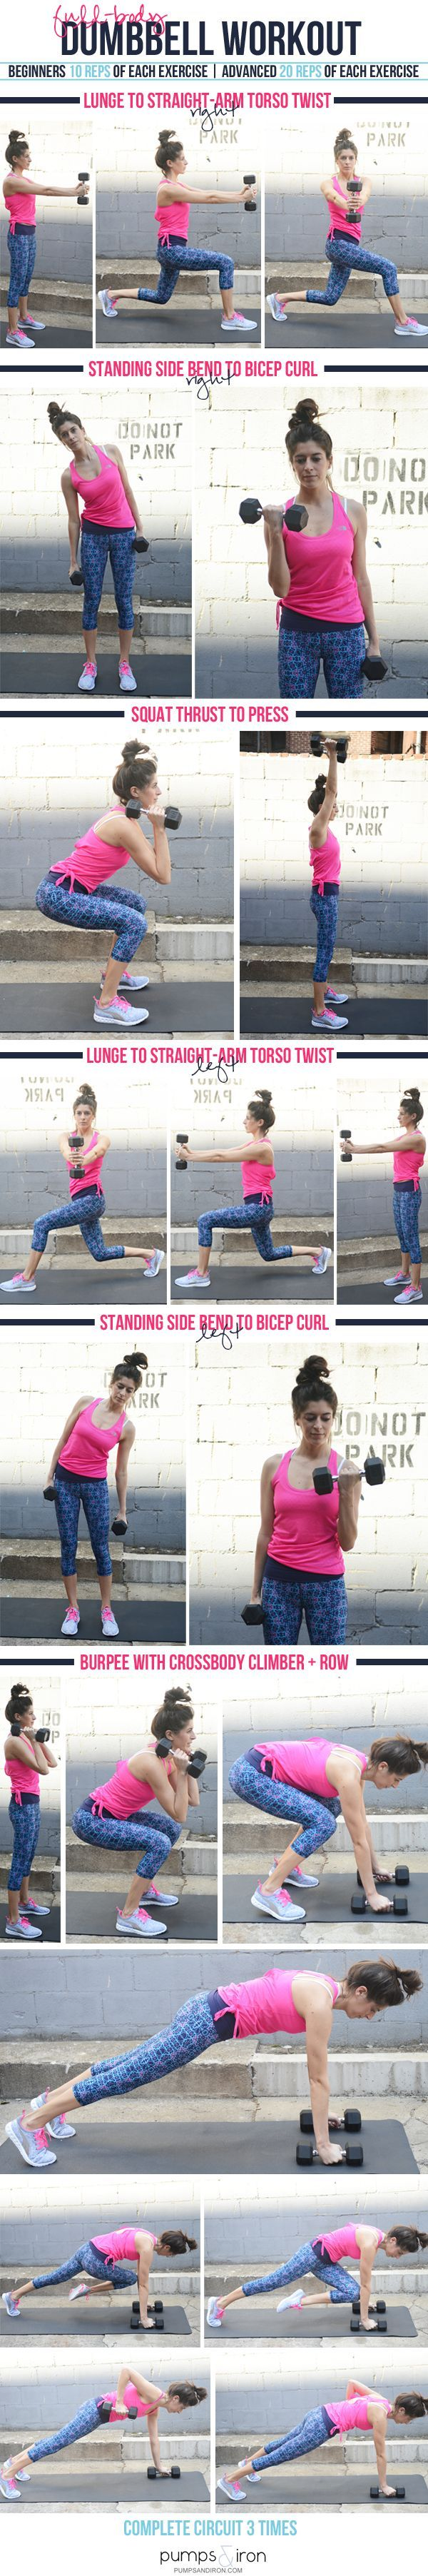 Full Body Dumbbell Workout With Compound Exercises Health Circuit Weights Workouts Pinterest